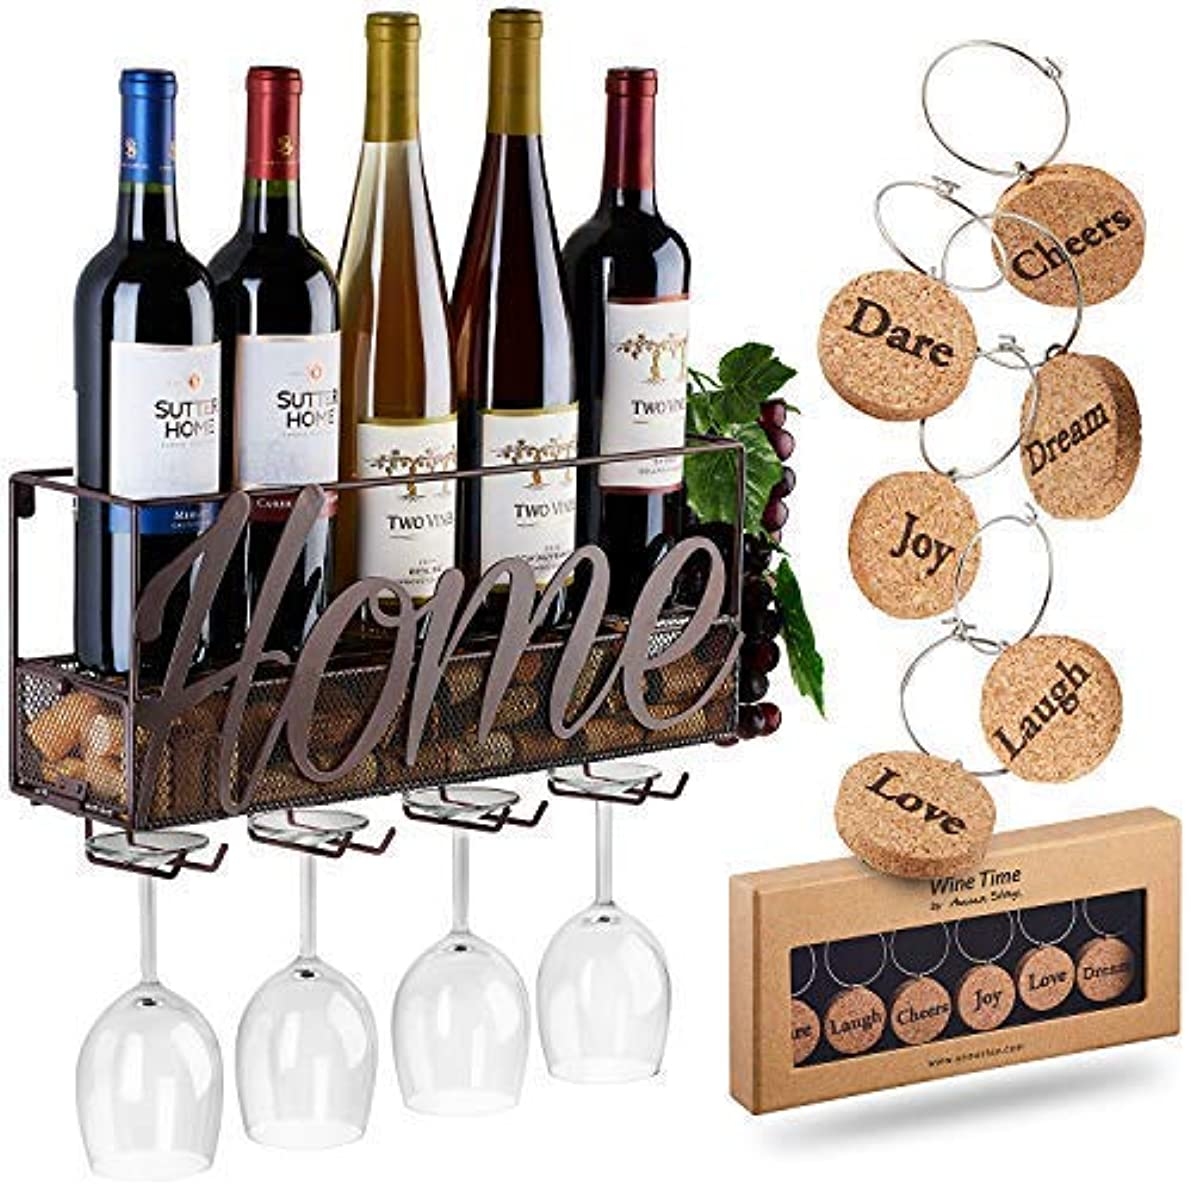 Wall Mounted Wine Rack | Bottle & Glass Holder | Cork Storage Store Red, White, Champagne | Come with 6 Cork Wine Charms | Home & Kitchen Décor | Storage Rack | Designed by Anna Stay,Home